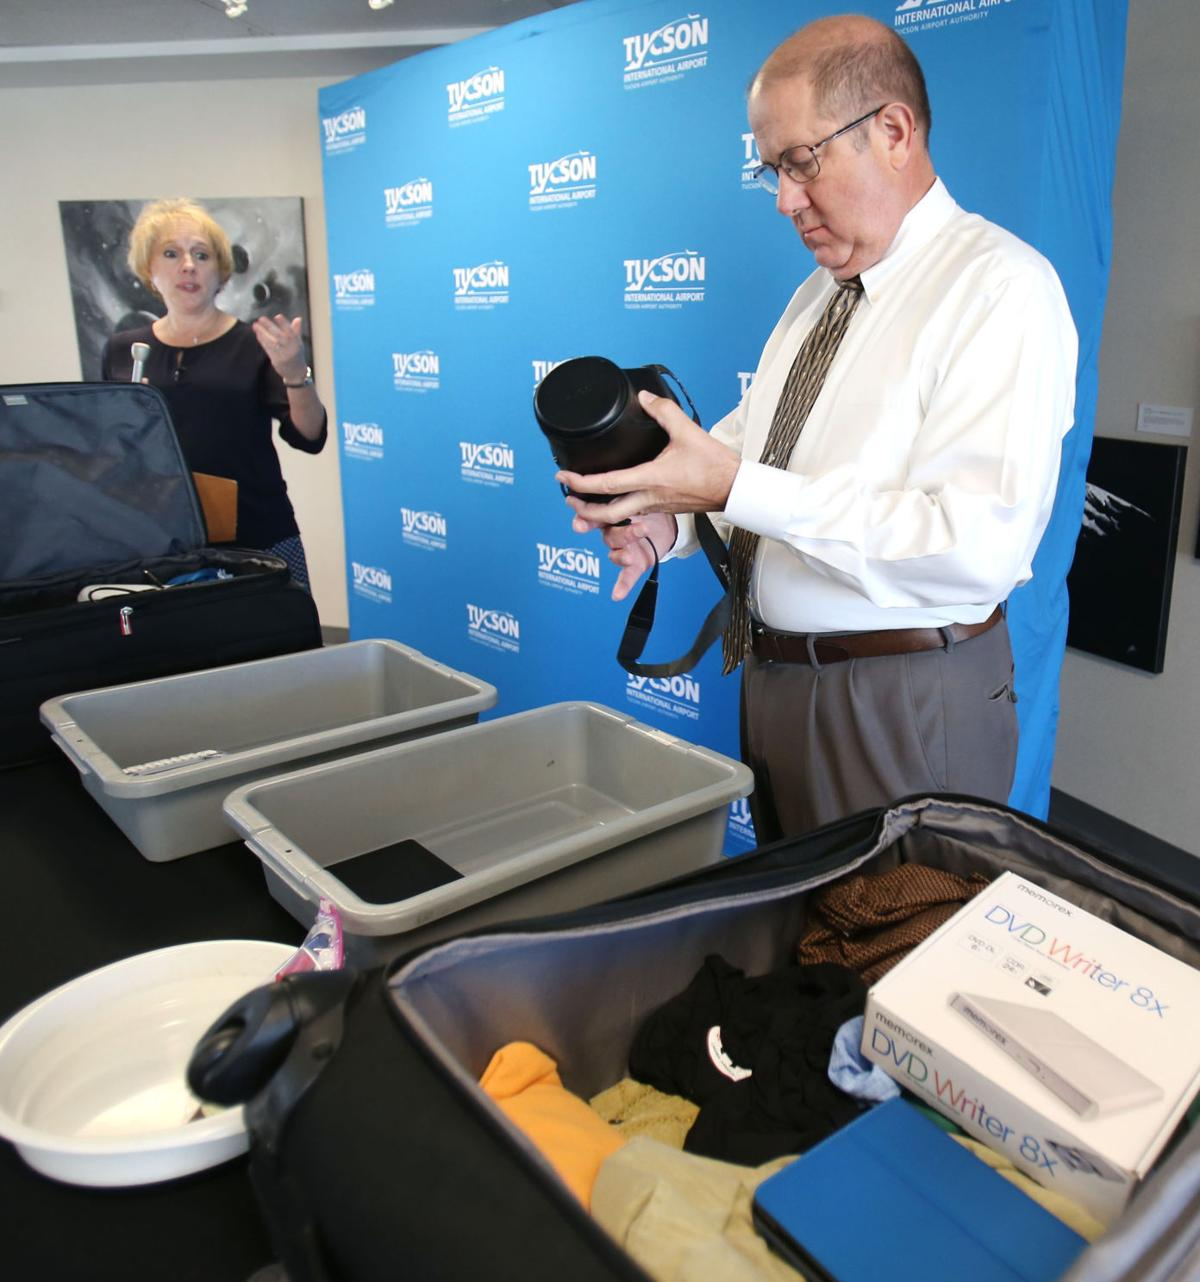 New airport screening rules at Tucson International Airport